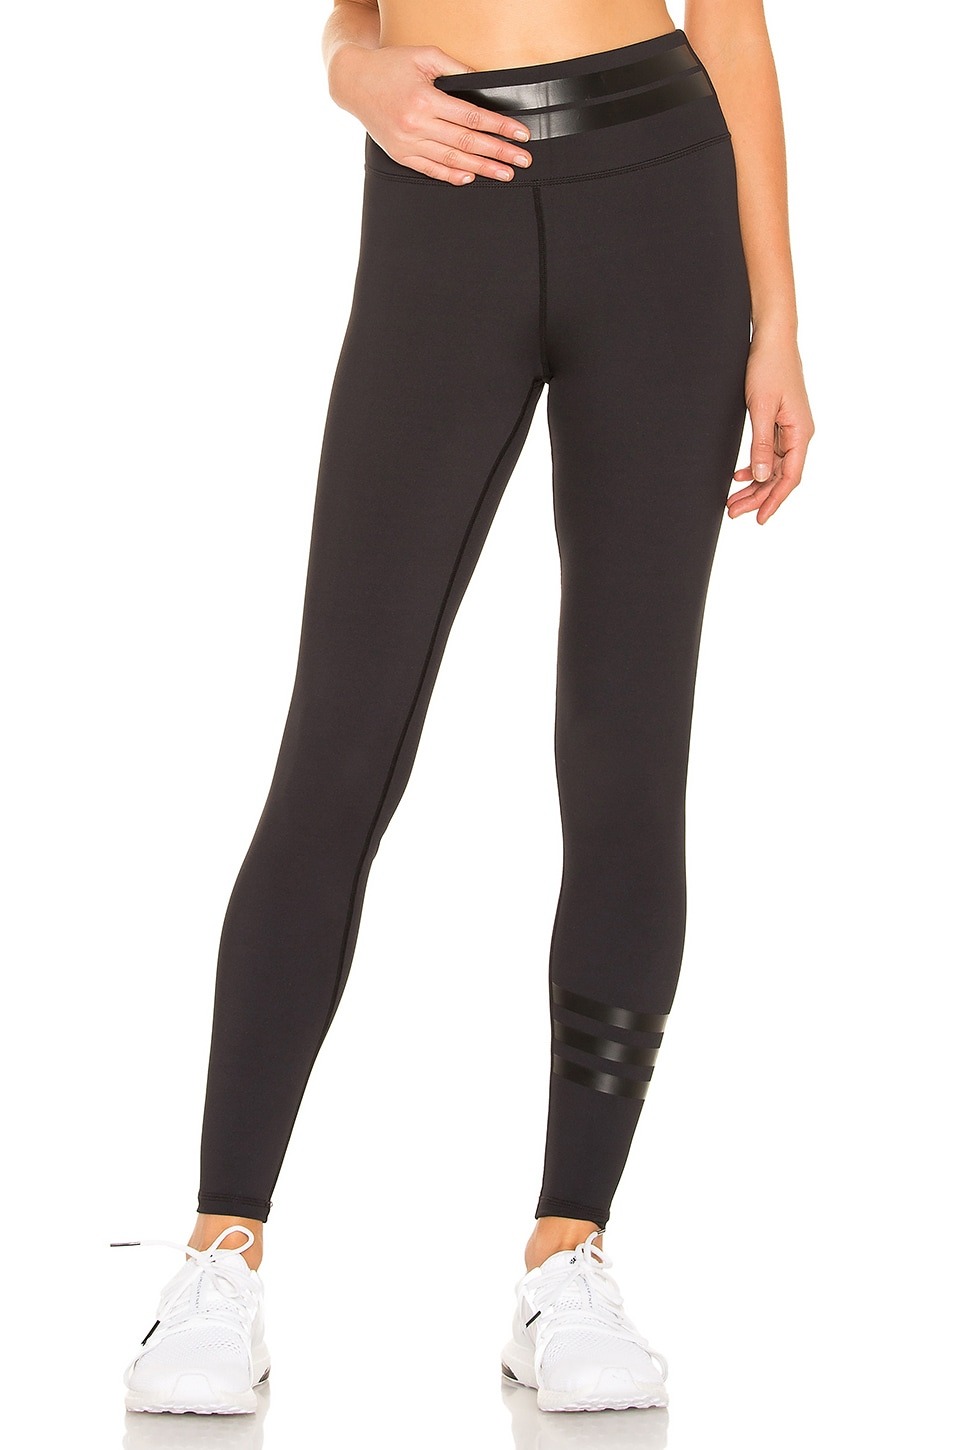 LILYBOD Ella Legging in Black